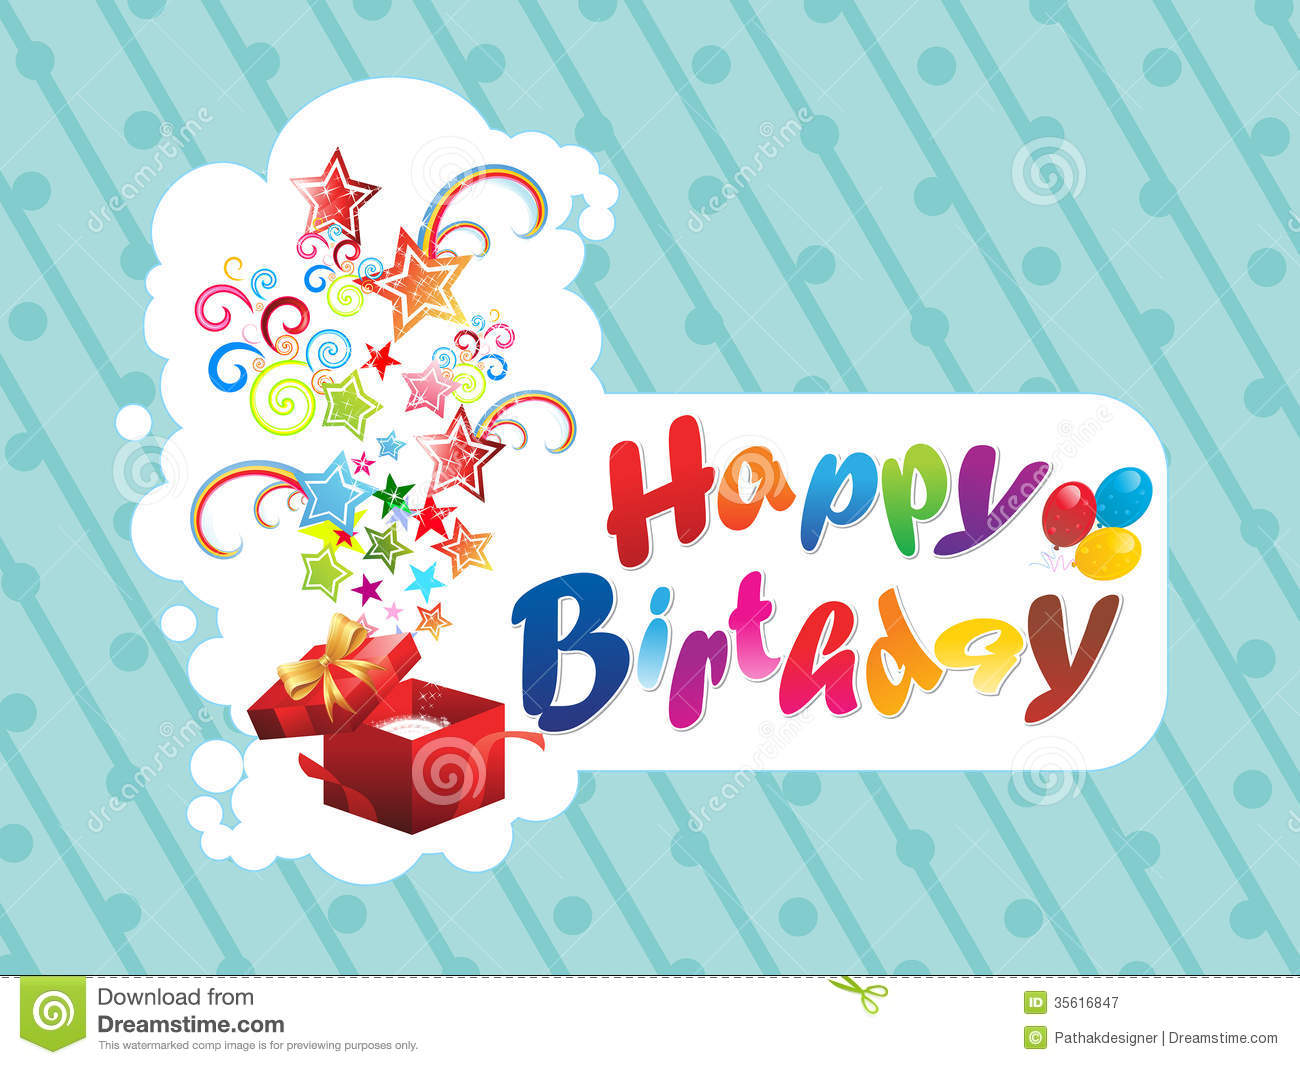 Royalty Free Birthday Images ~ Abstract happy birthday background stock vector image